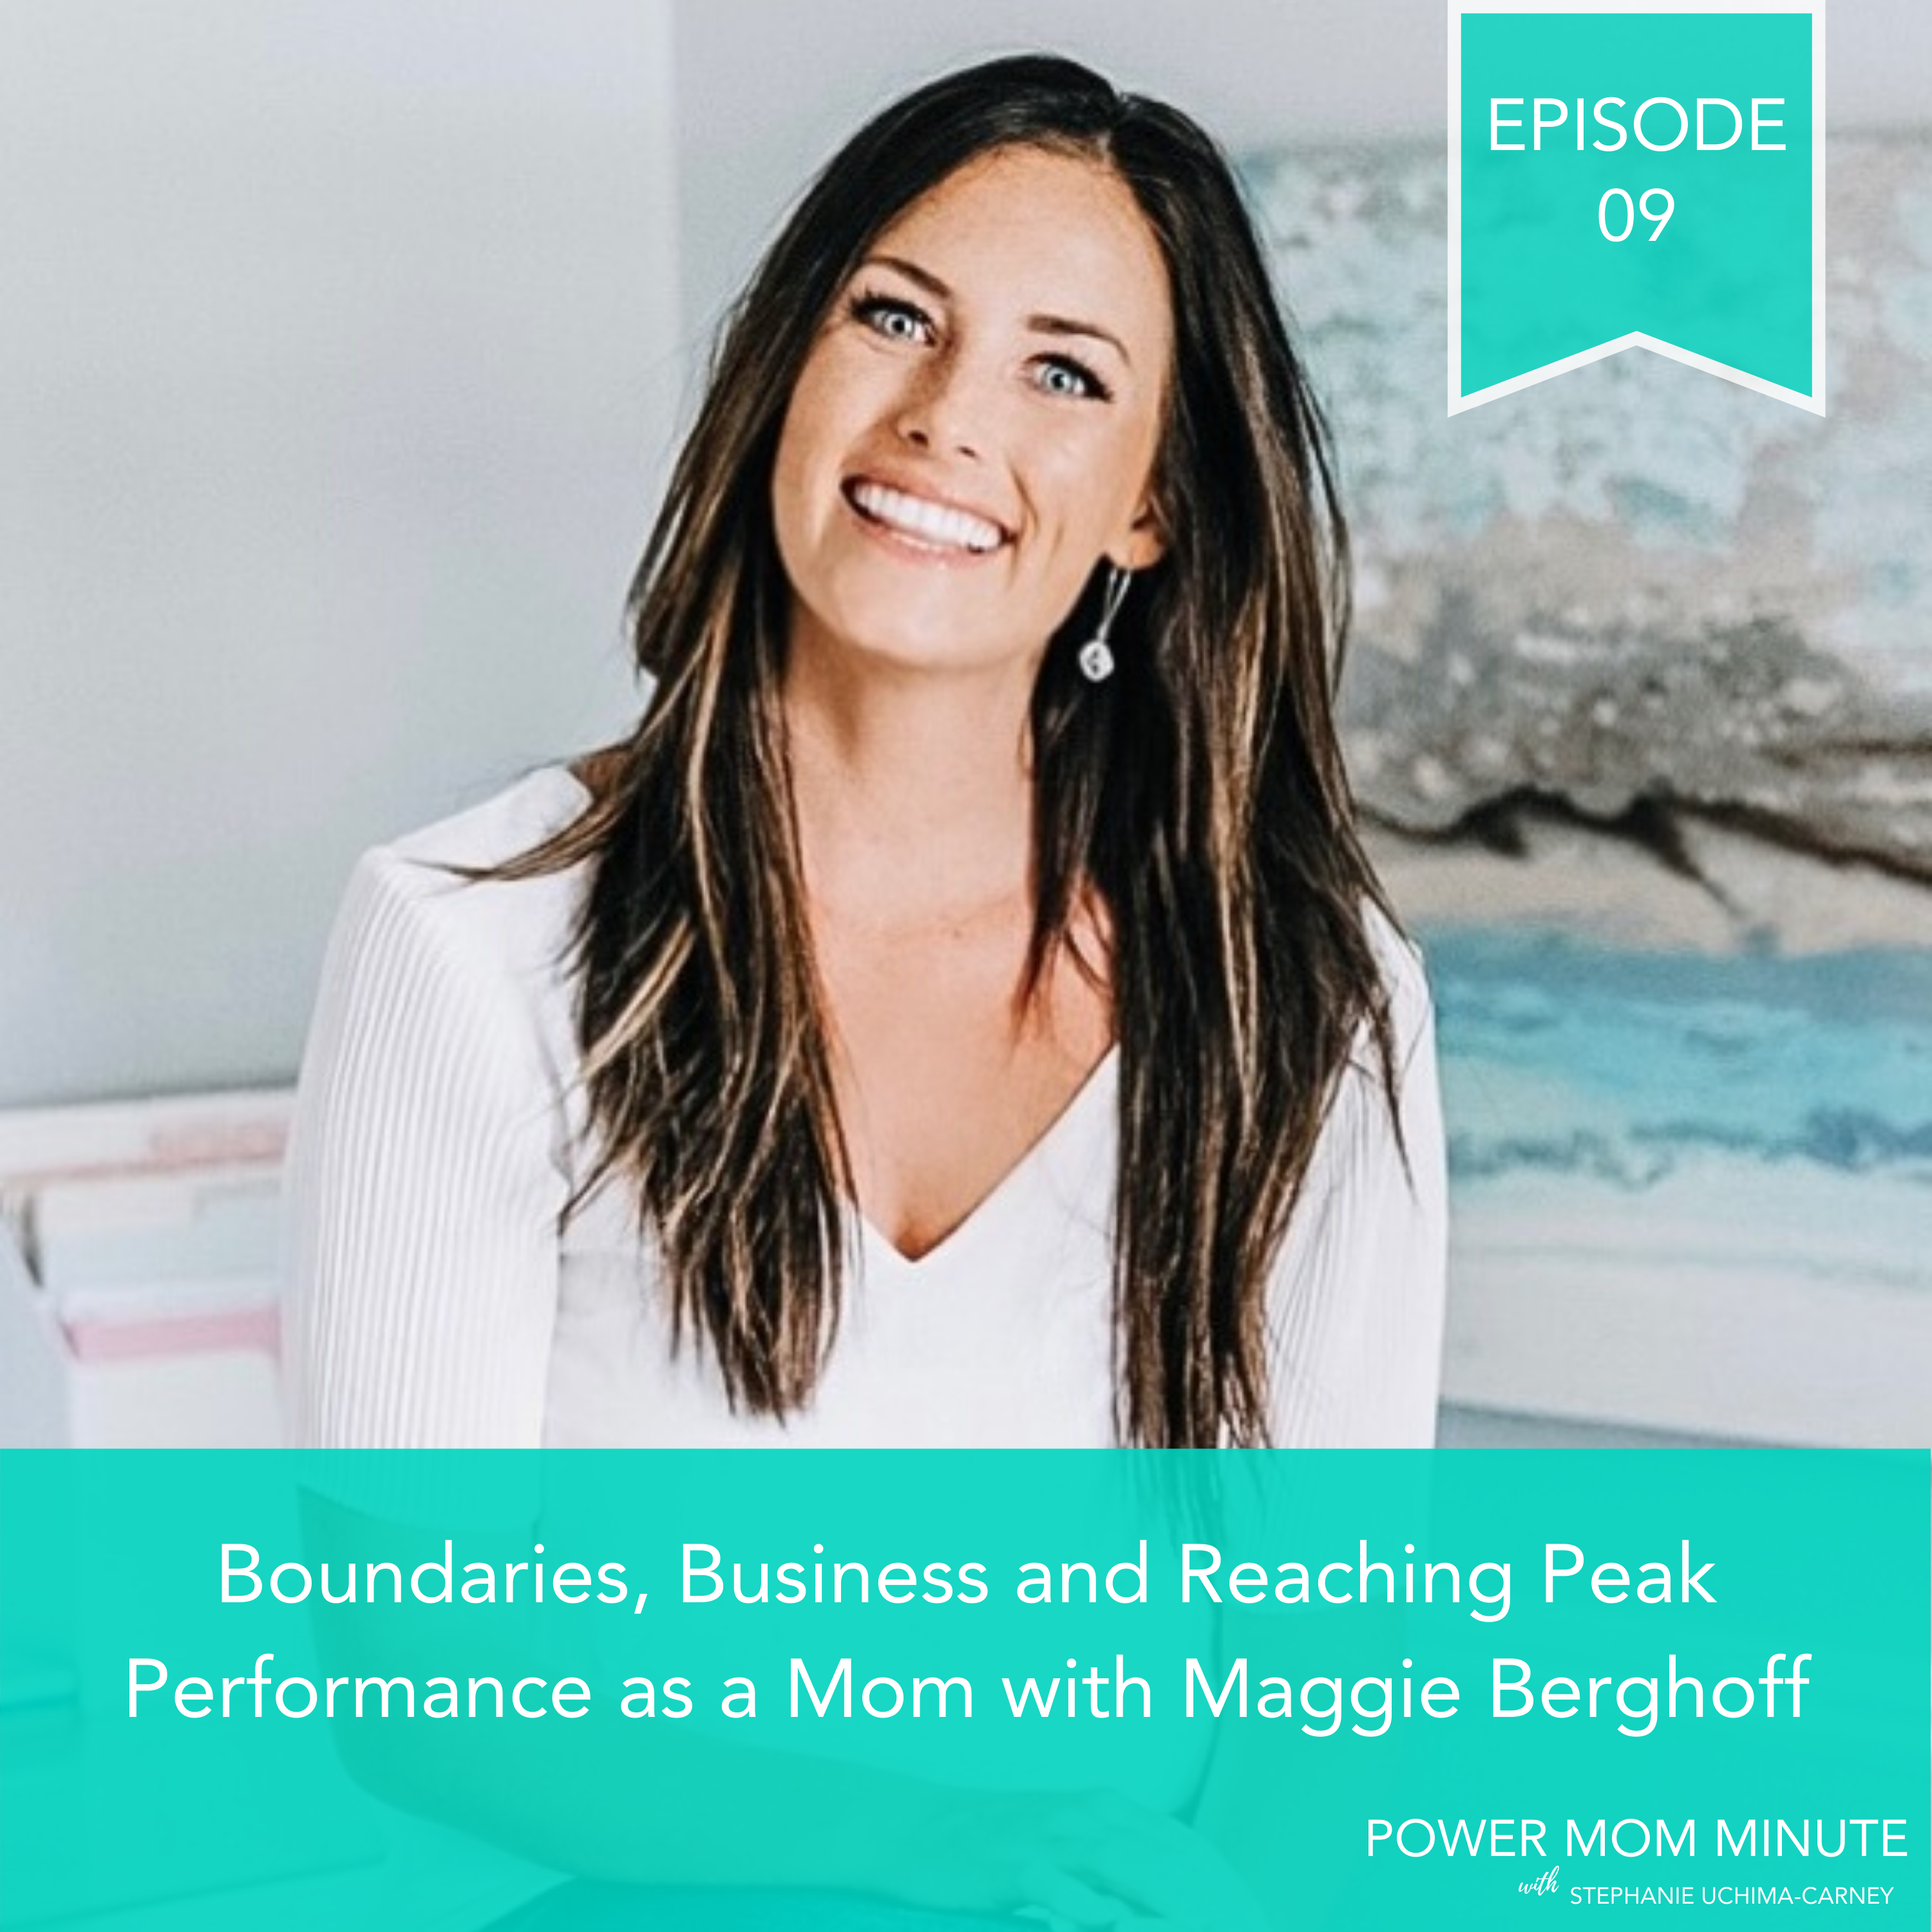 09. Boundaries, Business and Reaching Peak Performance as a Mom with Maggie Berghoff show art